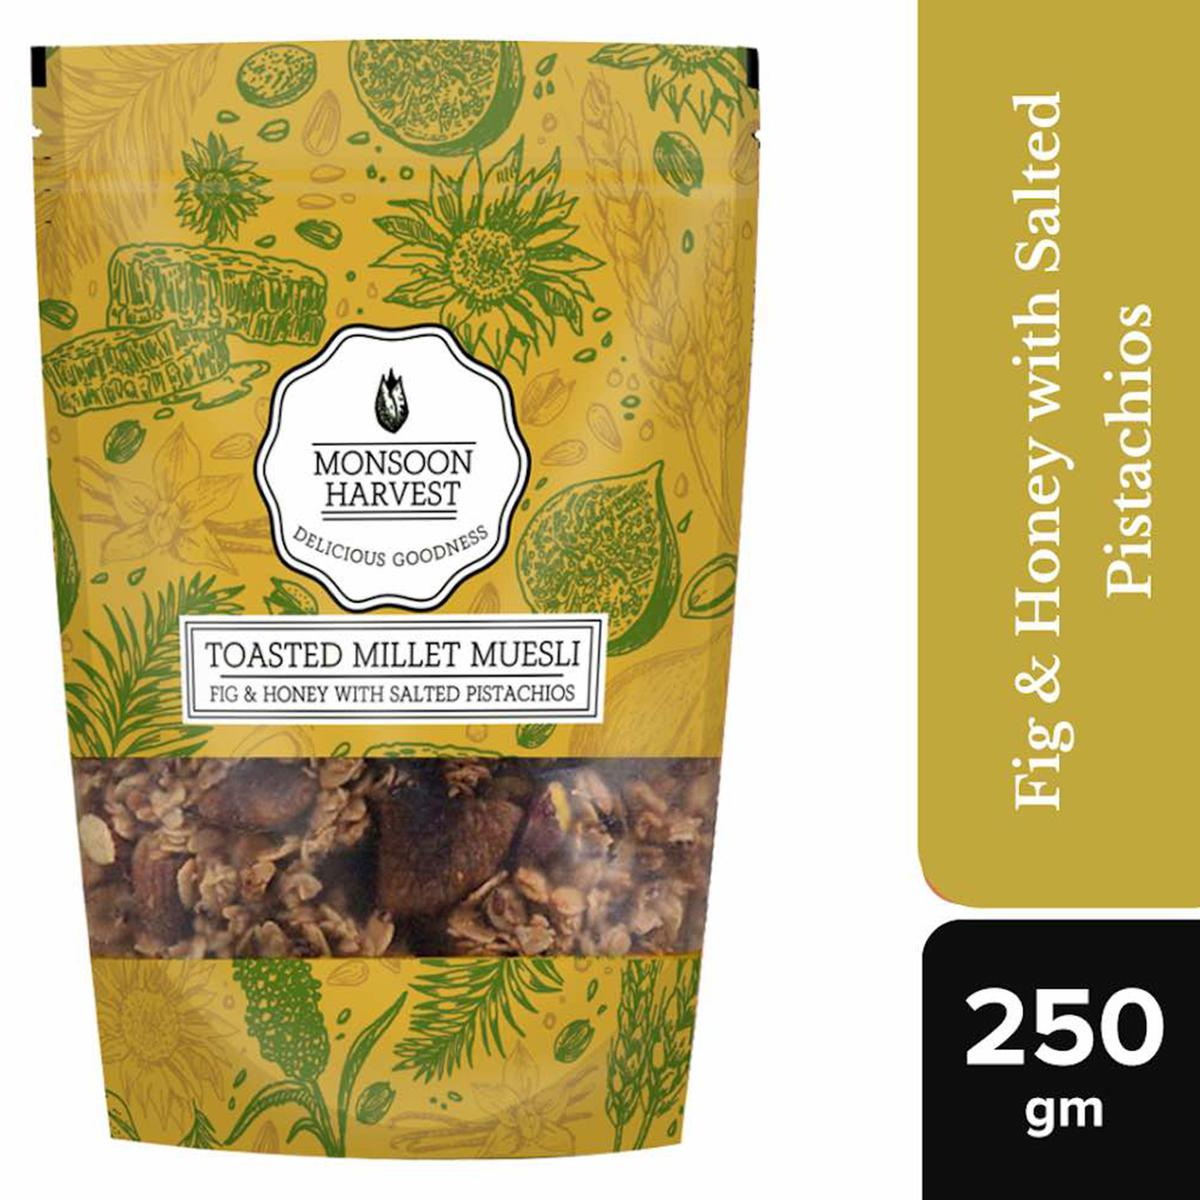 Monsoon Harvest Toasted Millet Muesli Fig & Honey with Salted Pistachios 250gms